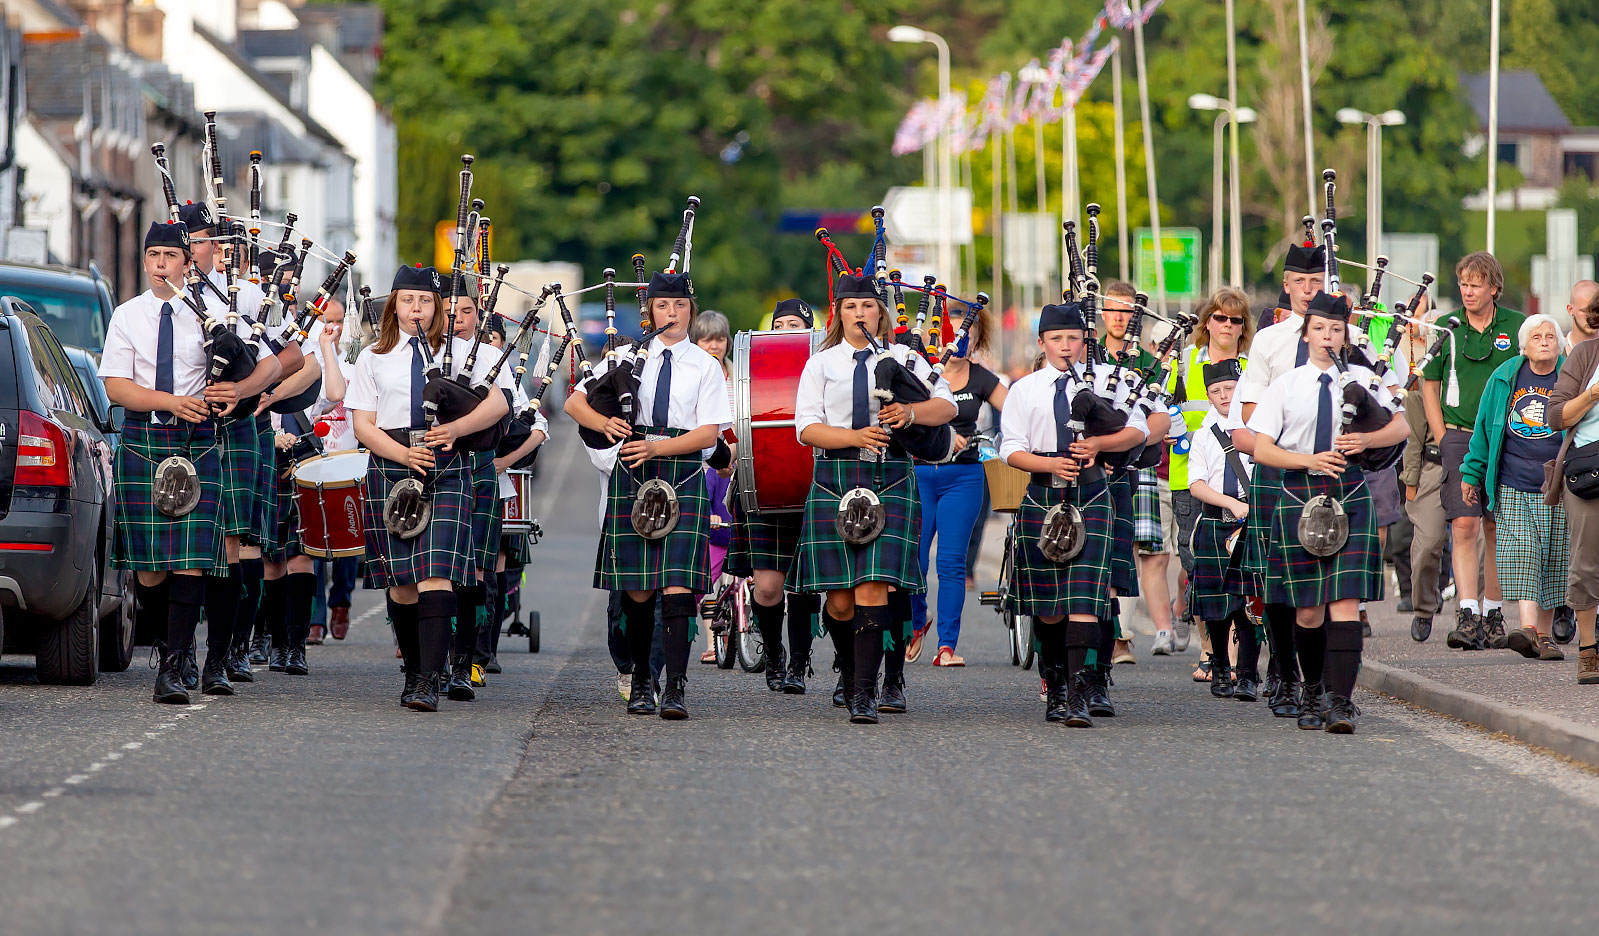 images/banners/ullapool/1.jpg